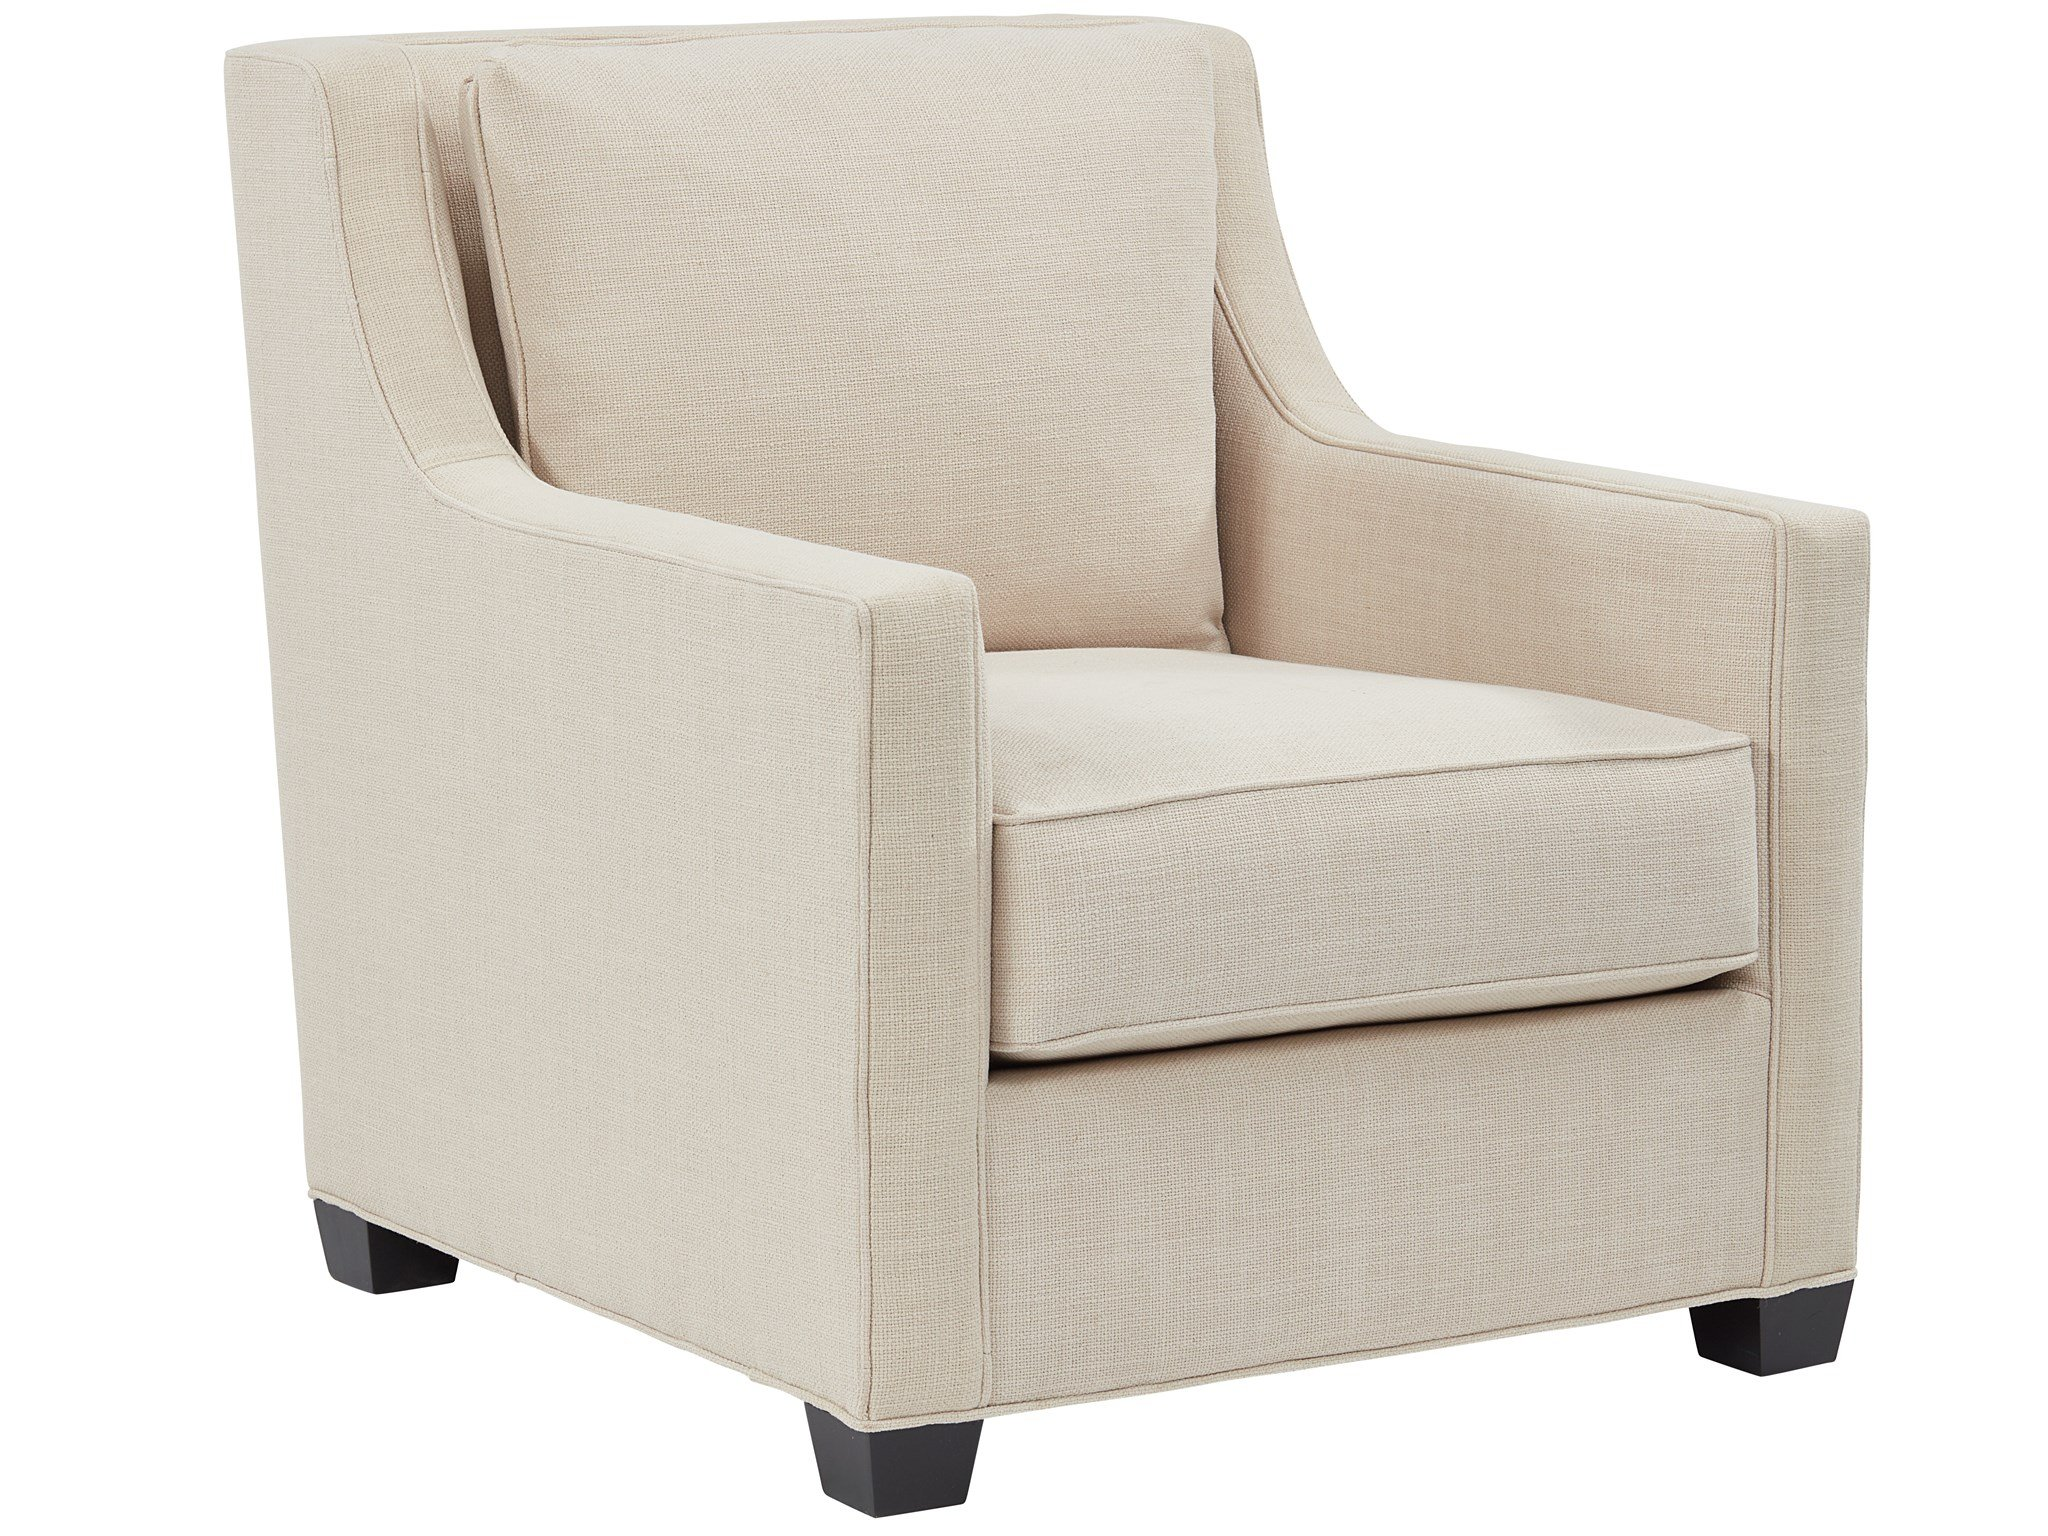 Salina Chair - Special Order